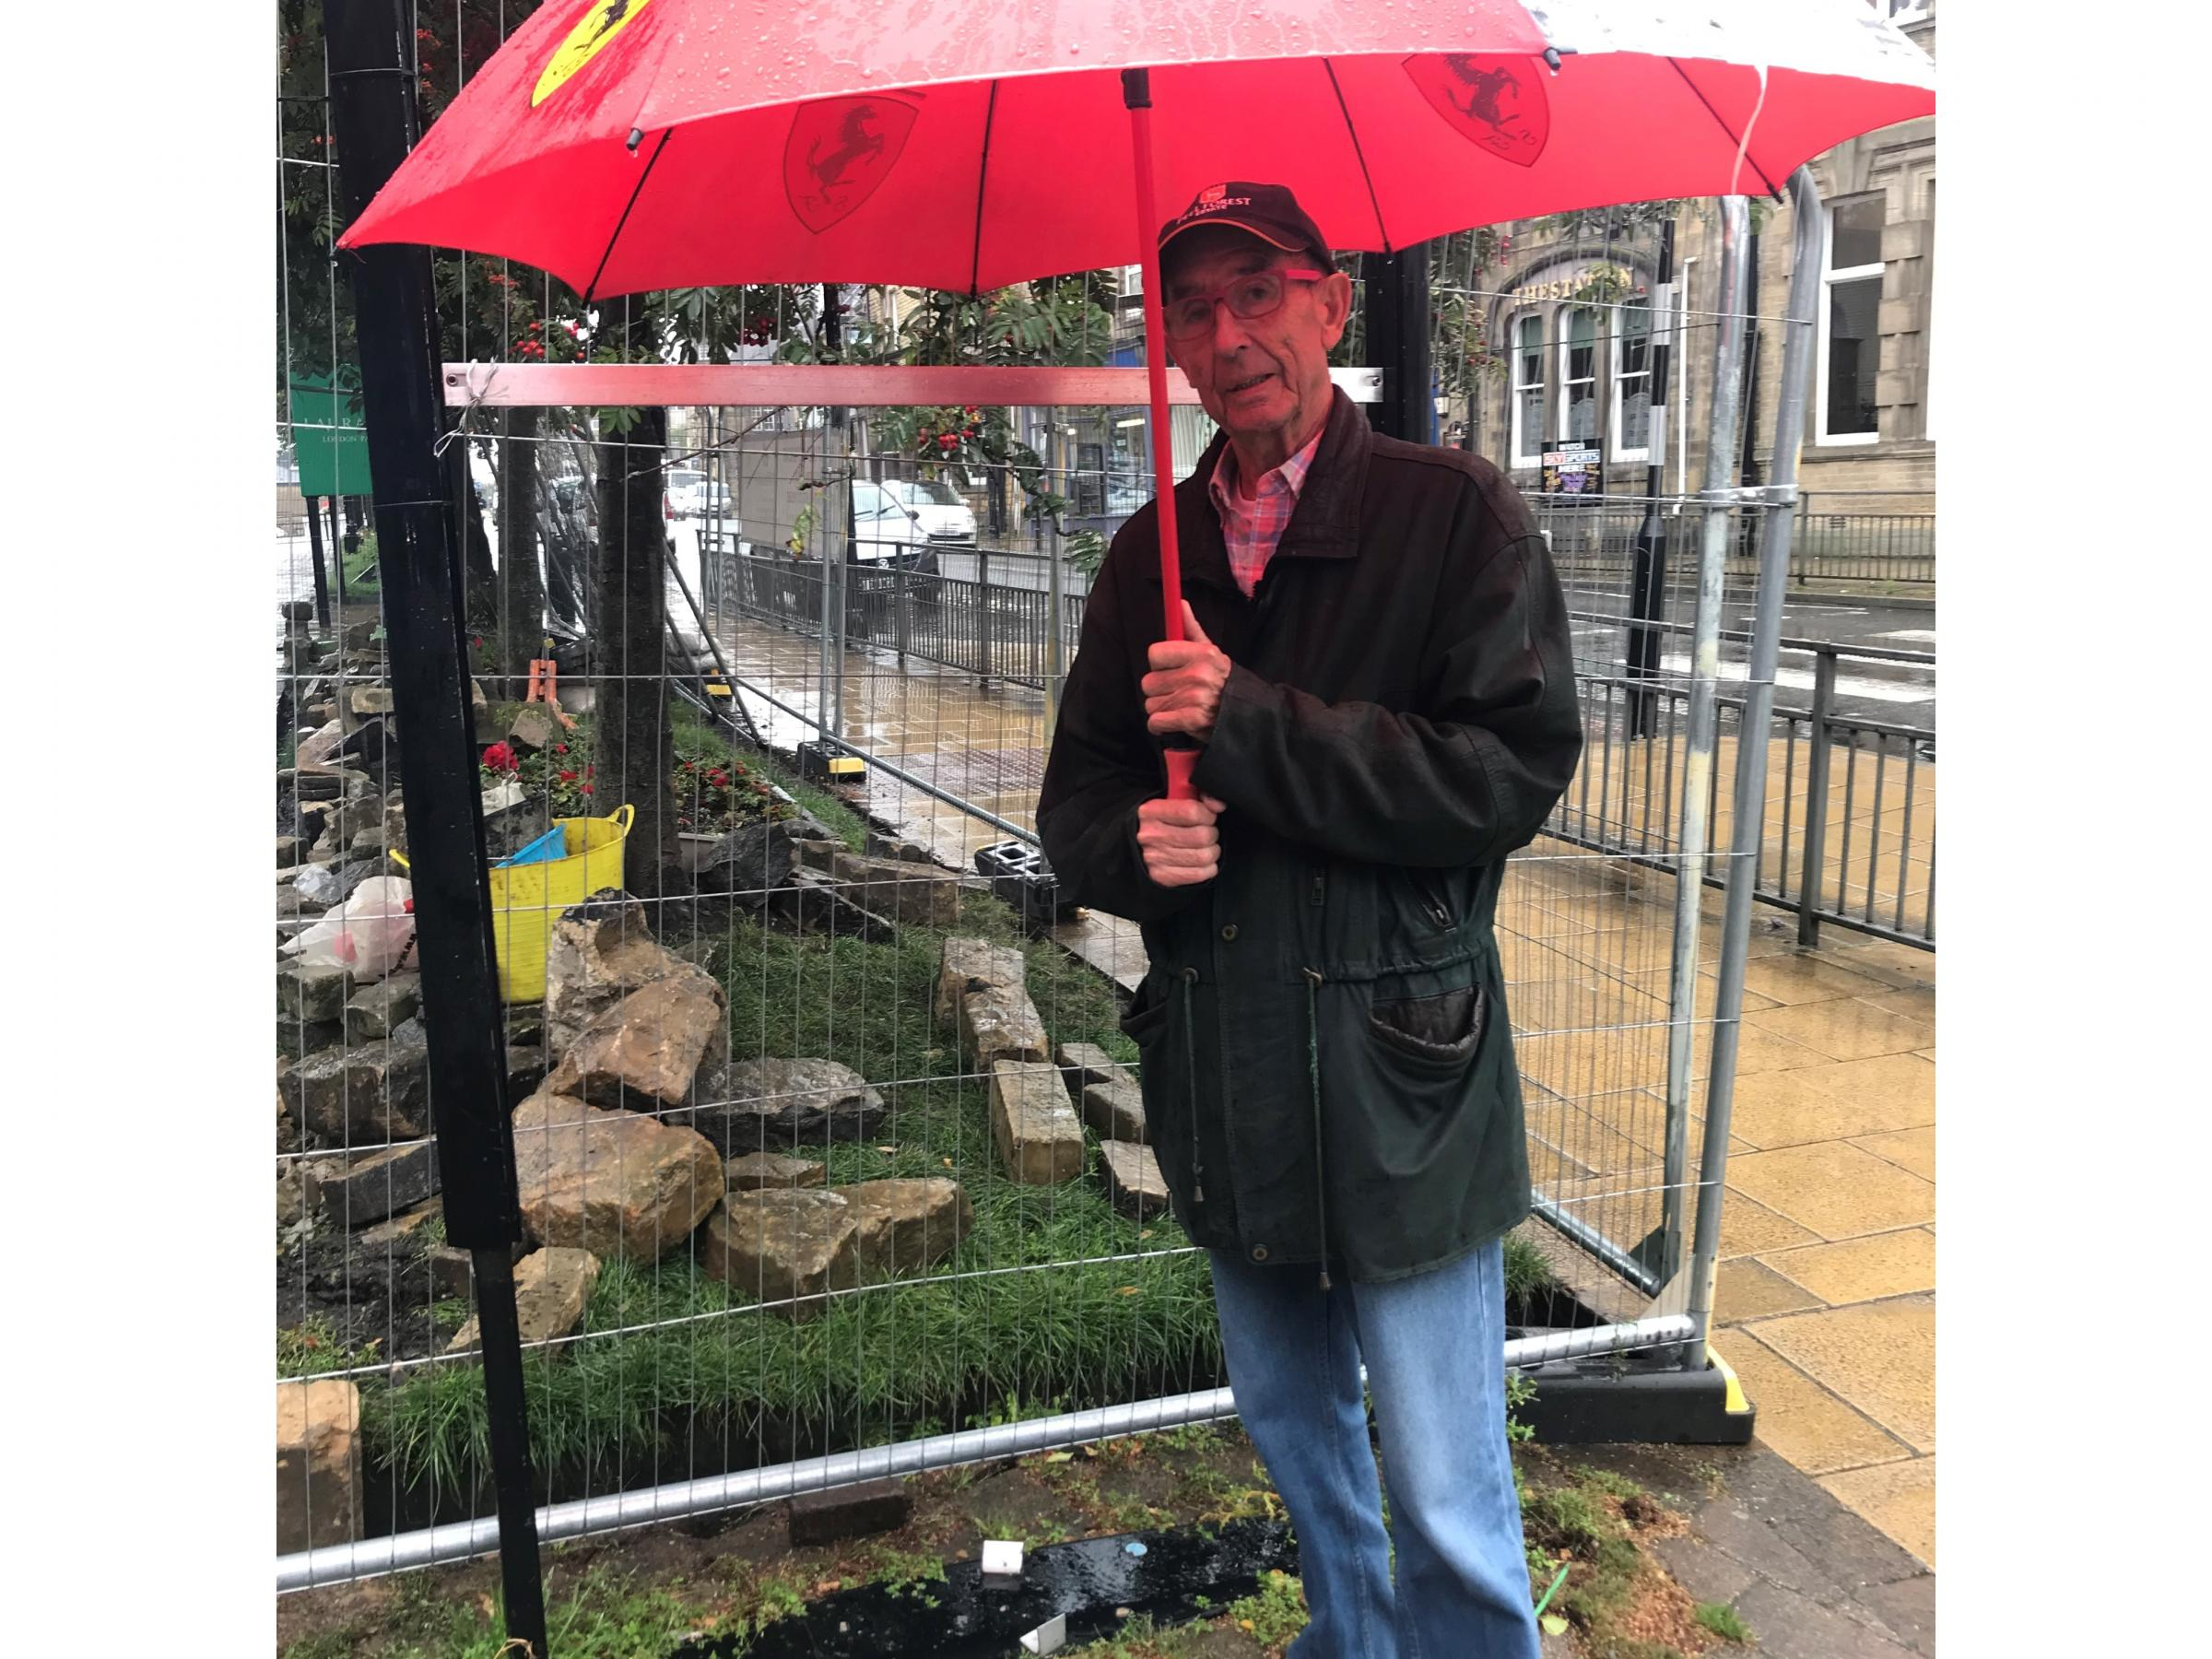 Man falls foul of planning rules in attempt to improve gateway to town